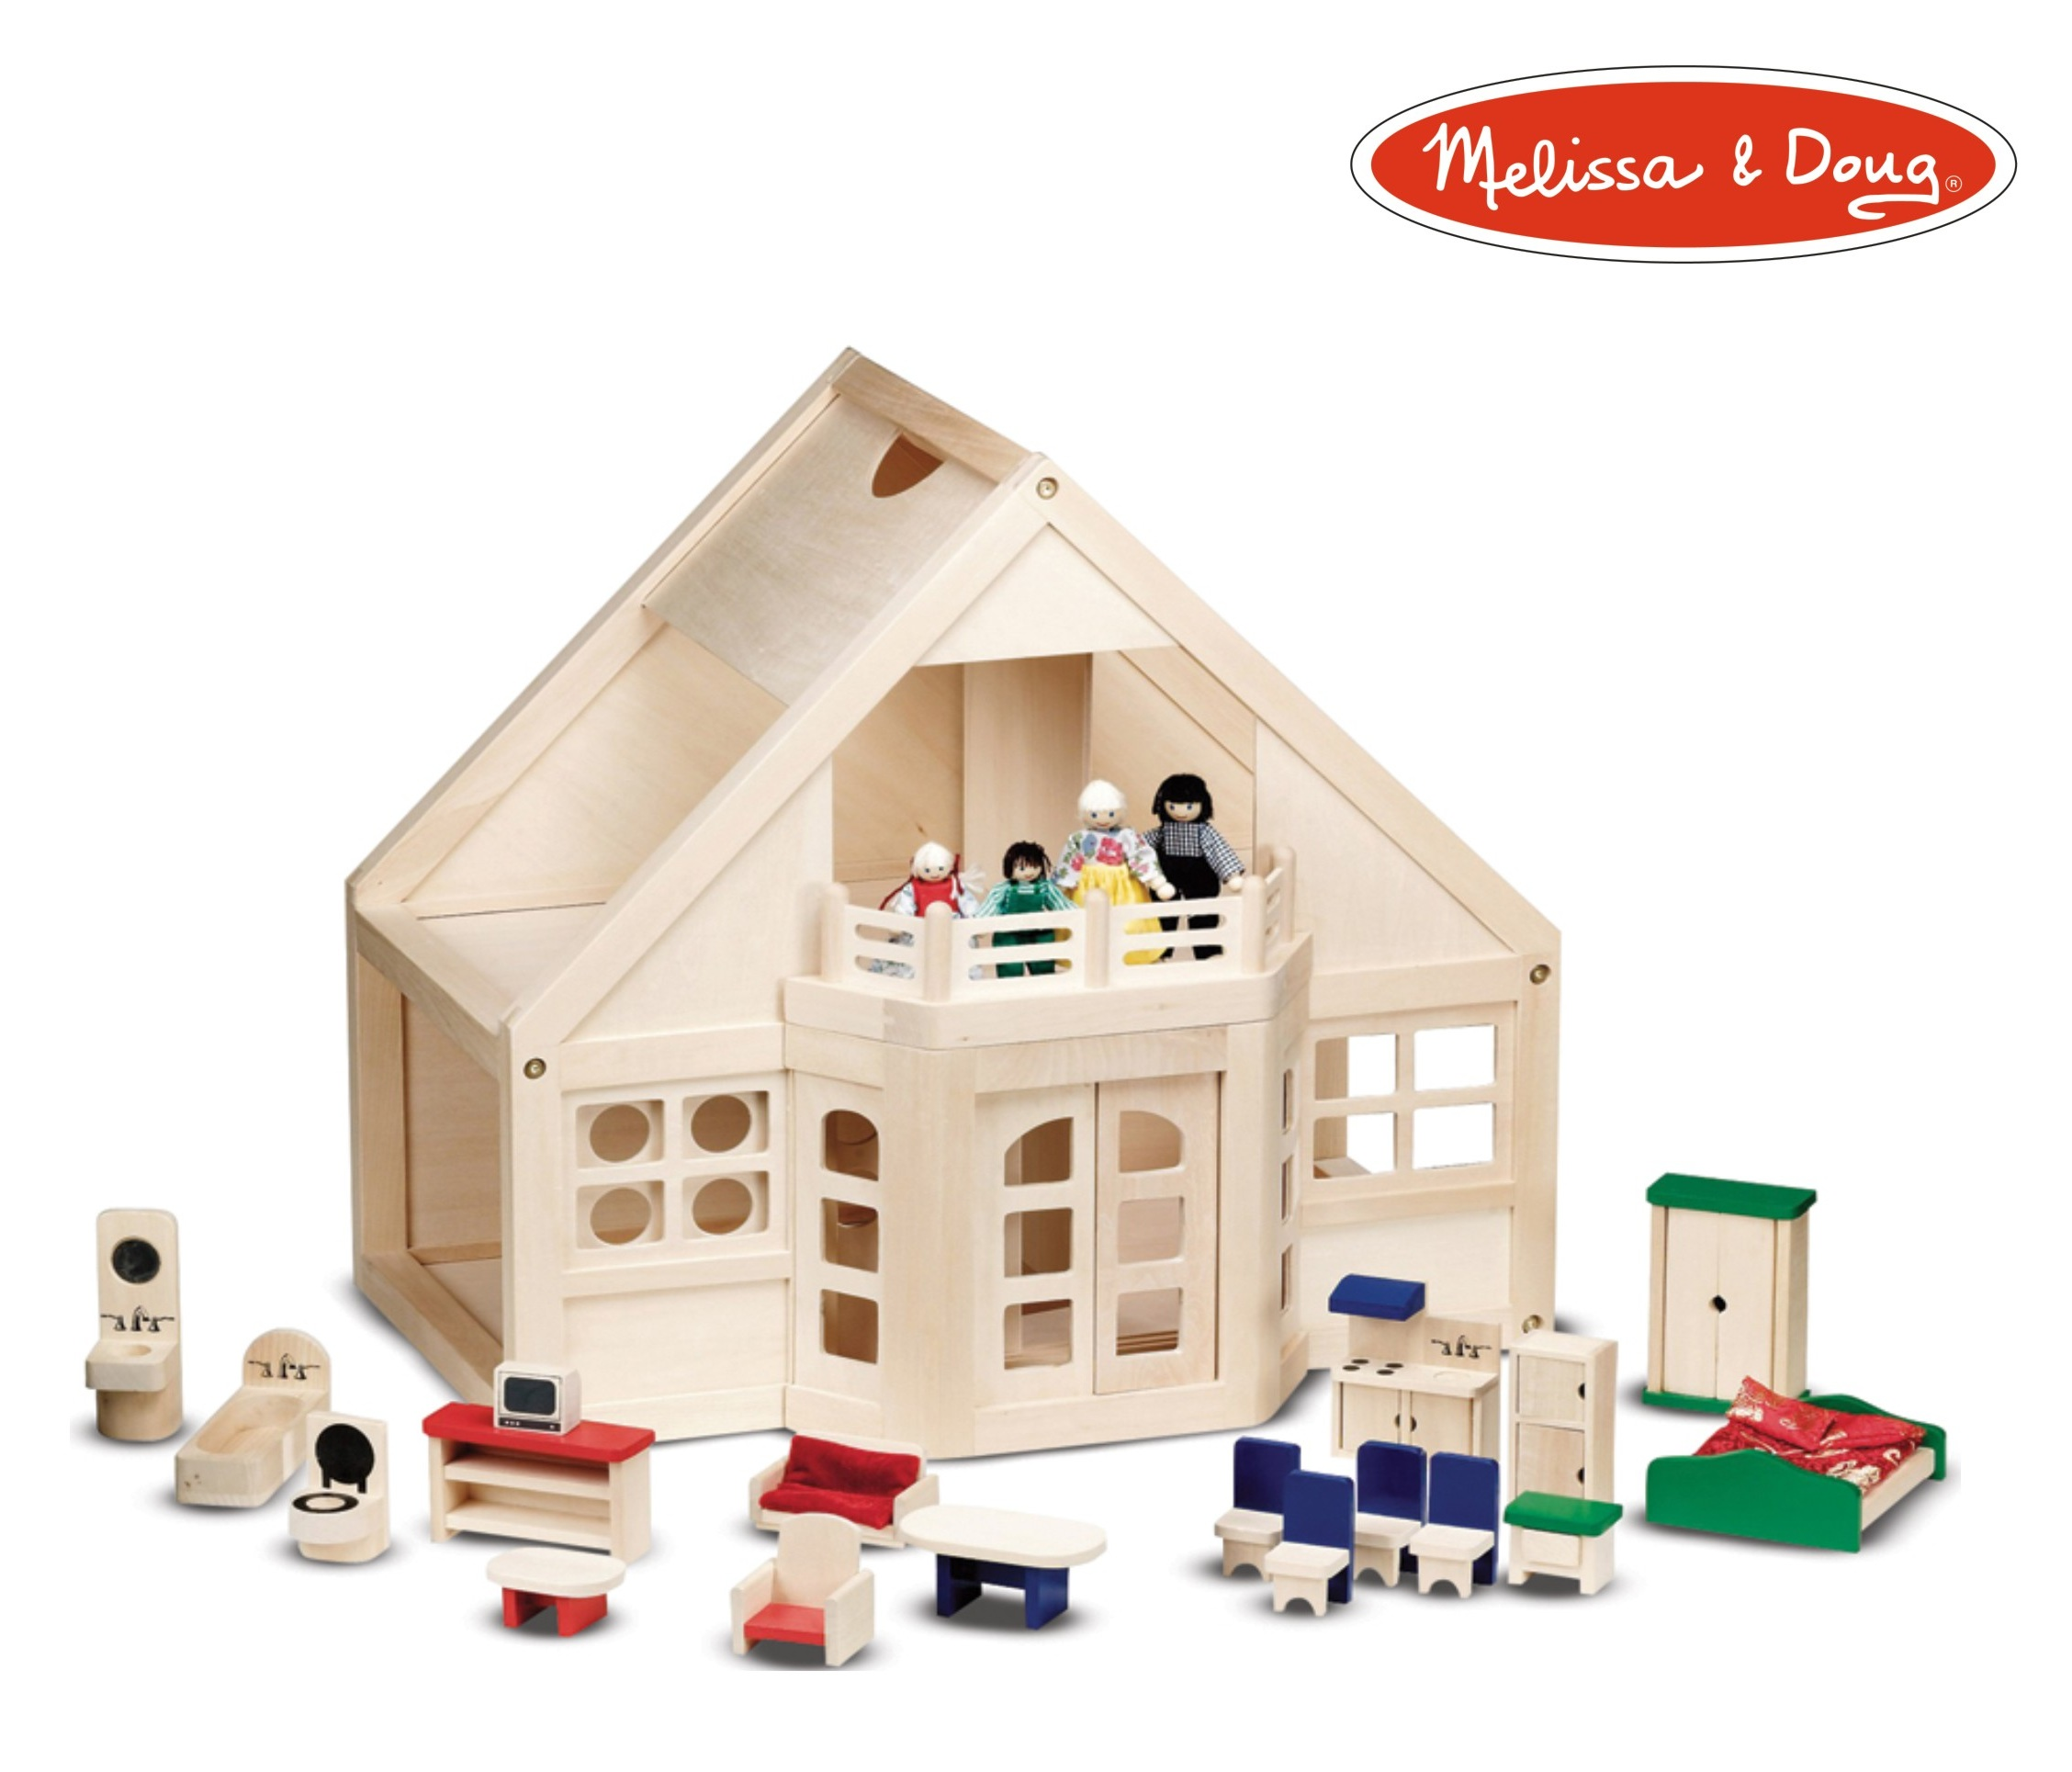 Win a Melissa and Doug Dollhouse!